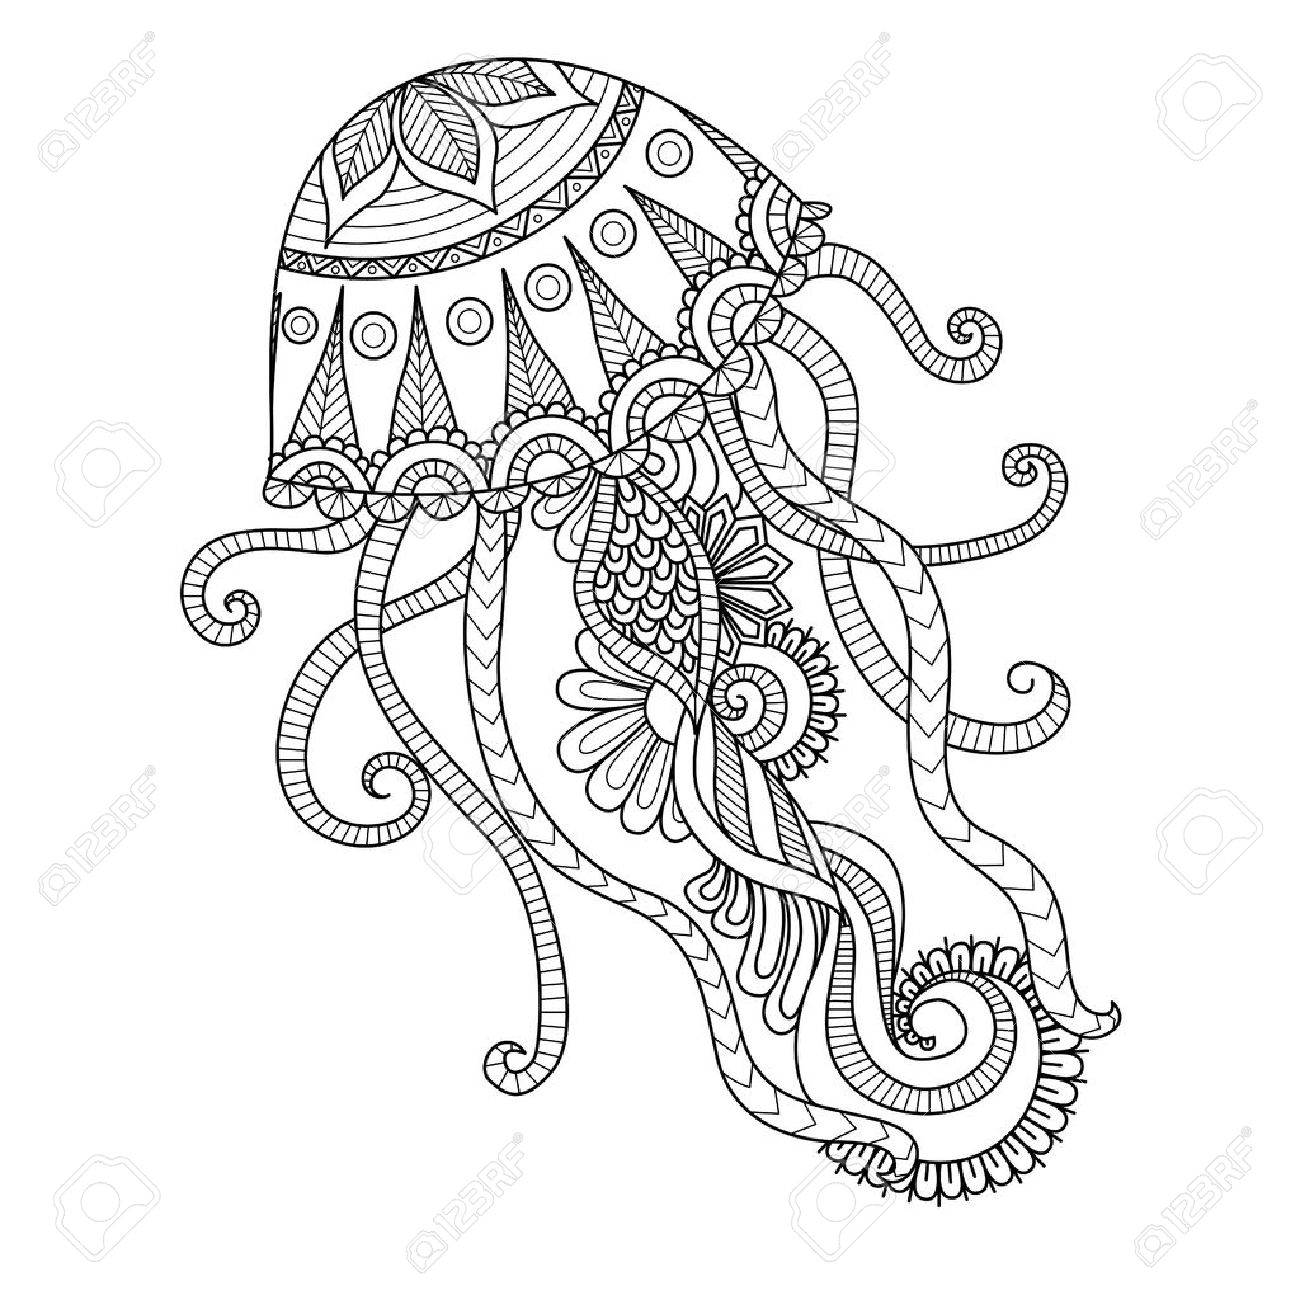 1300x1300 Hand Drawn Jellyfish Style For Coloring Page,t Shirt Design